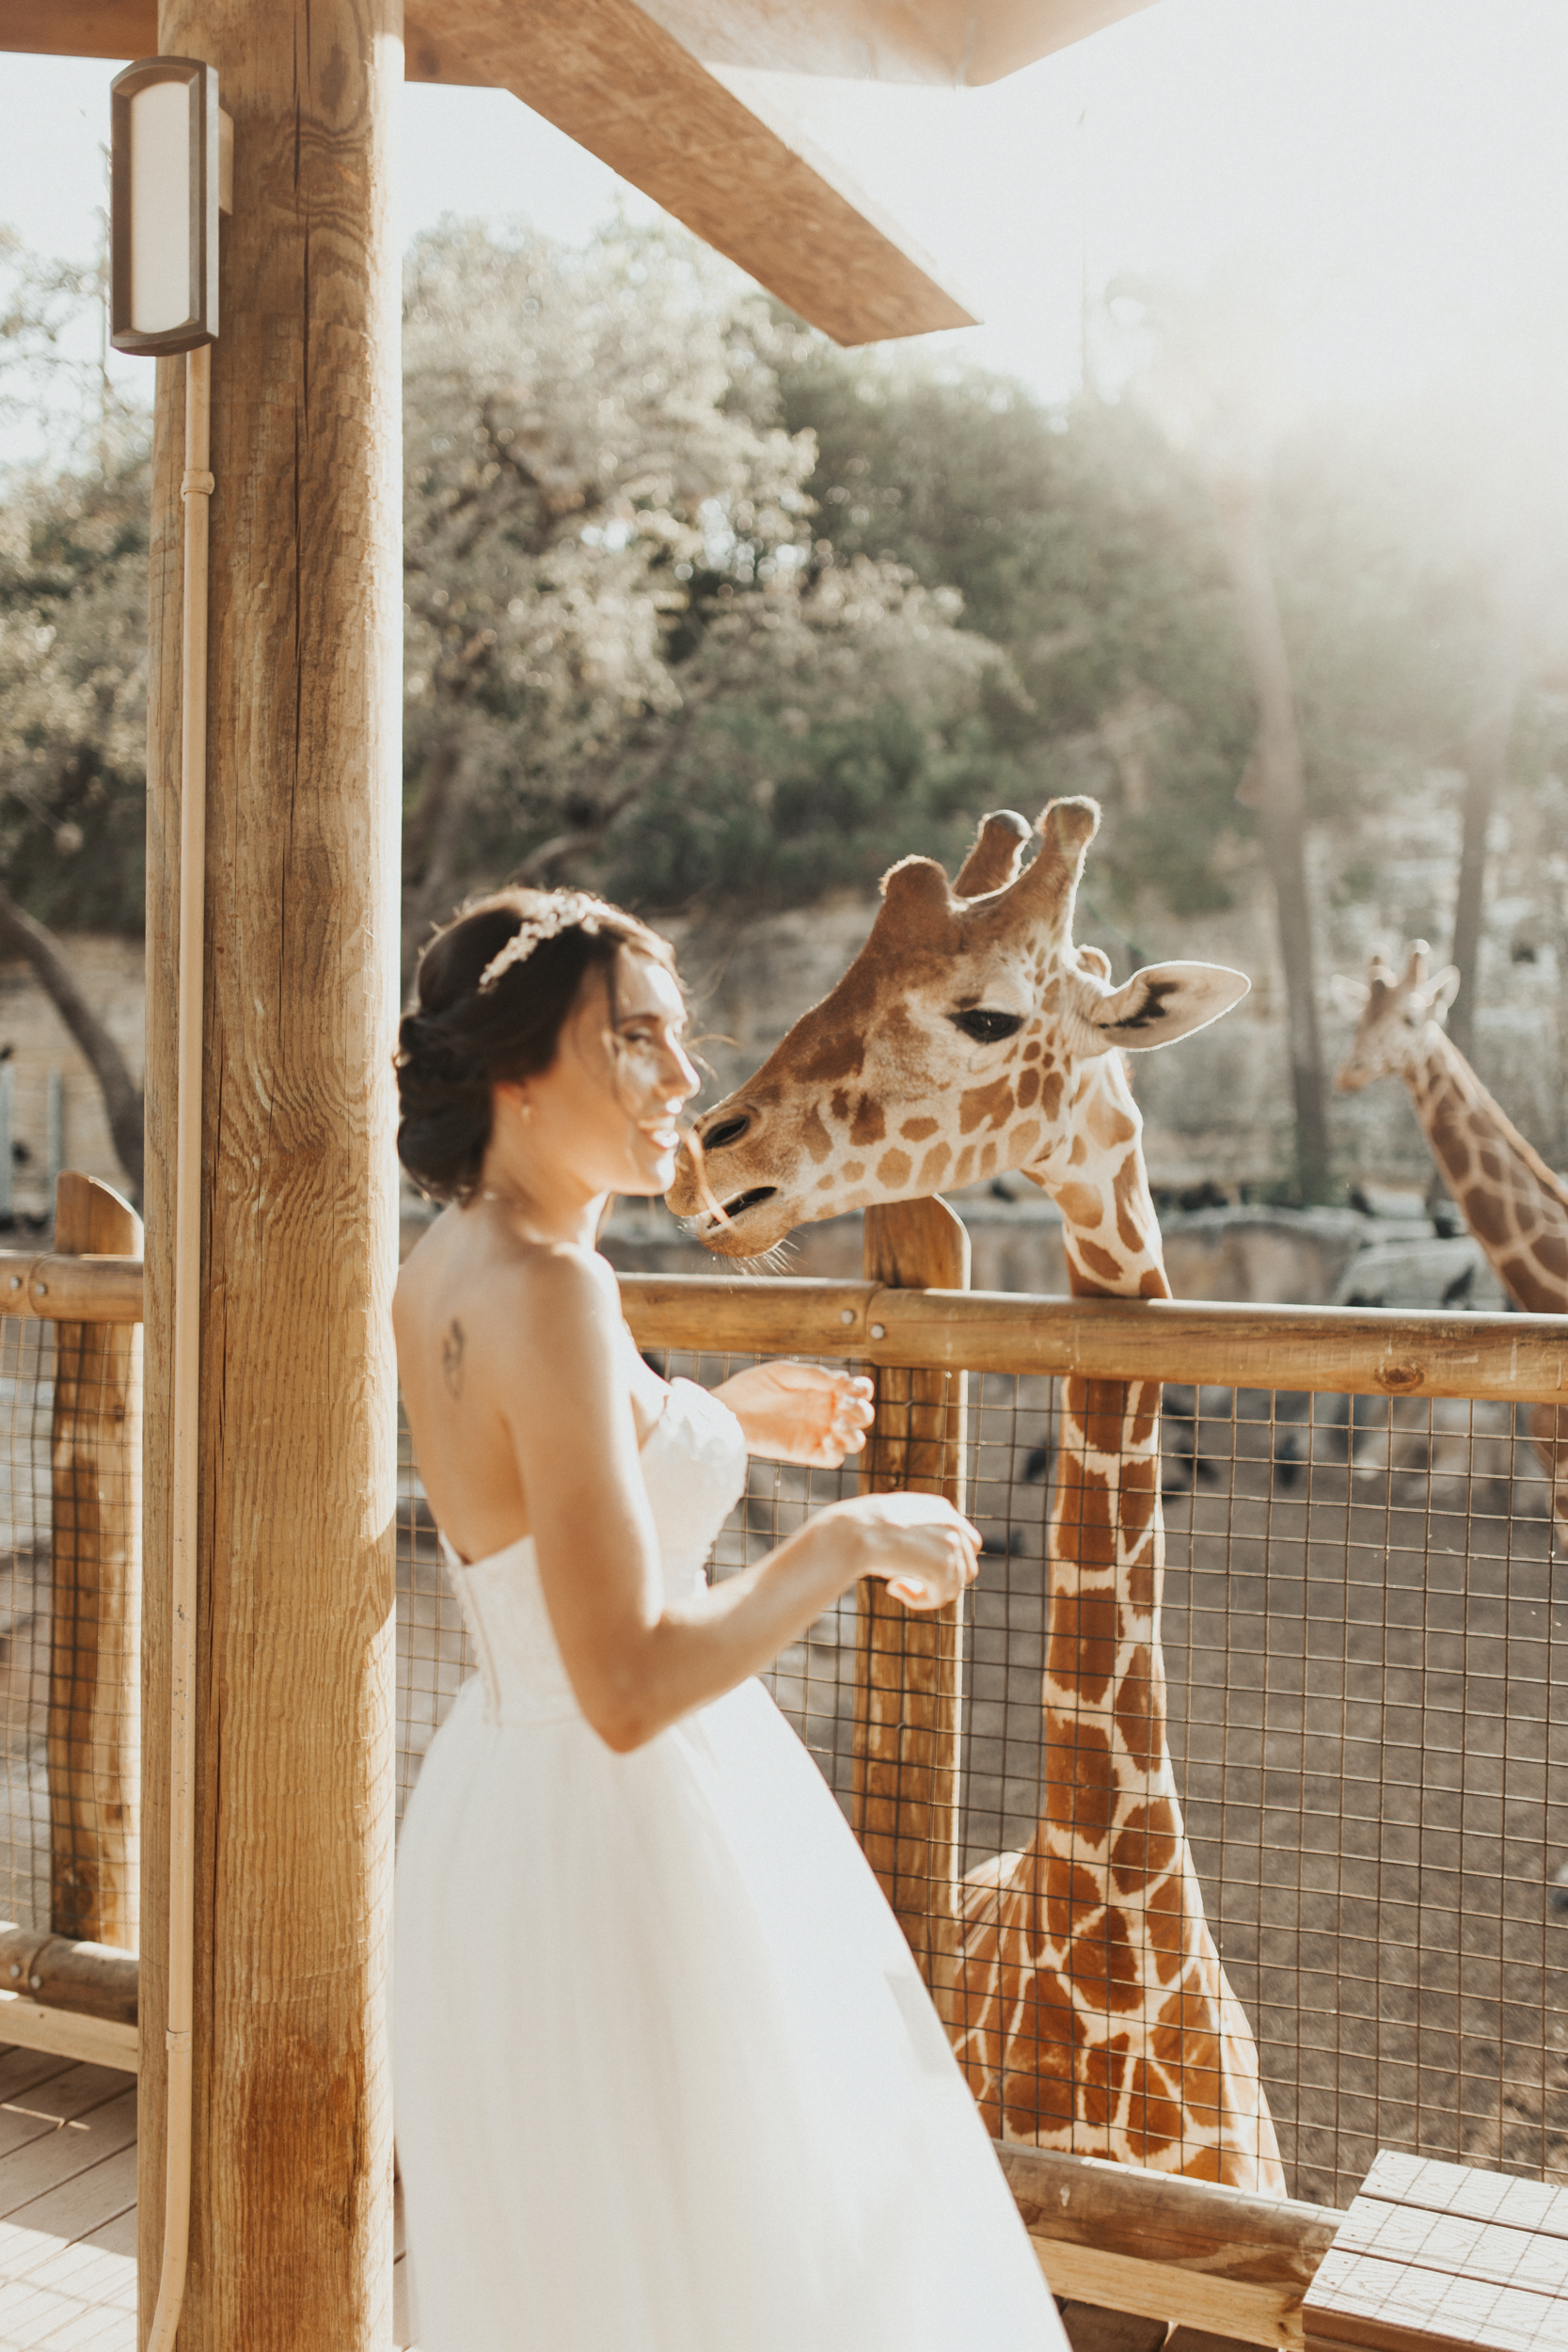 L'Cee's Zoo Bridal Session - This definitely made for one of the most unique bridal sessions we have had the privilege to shoot! Her and her team of friends made for an amazing and unforgettable time not to mention we had the whole zoo practically to ourselves!